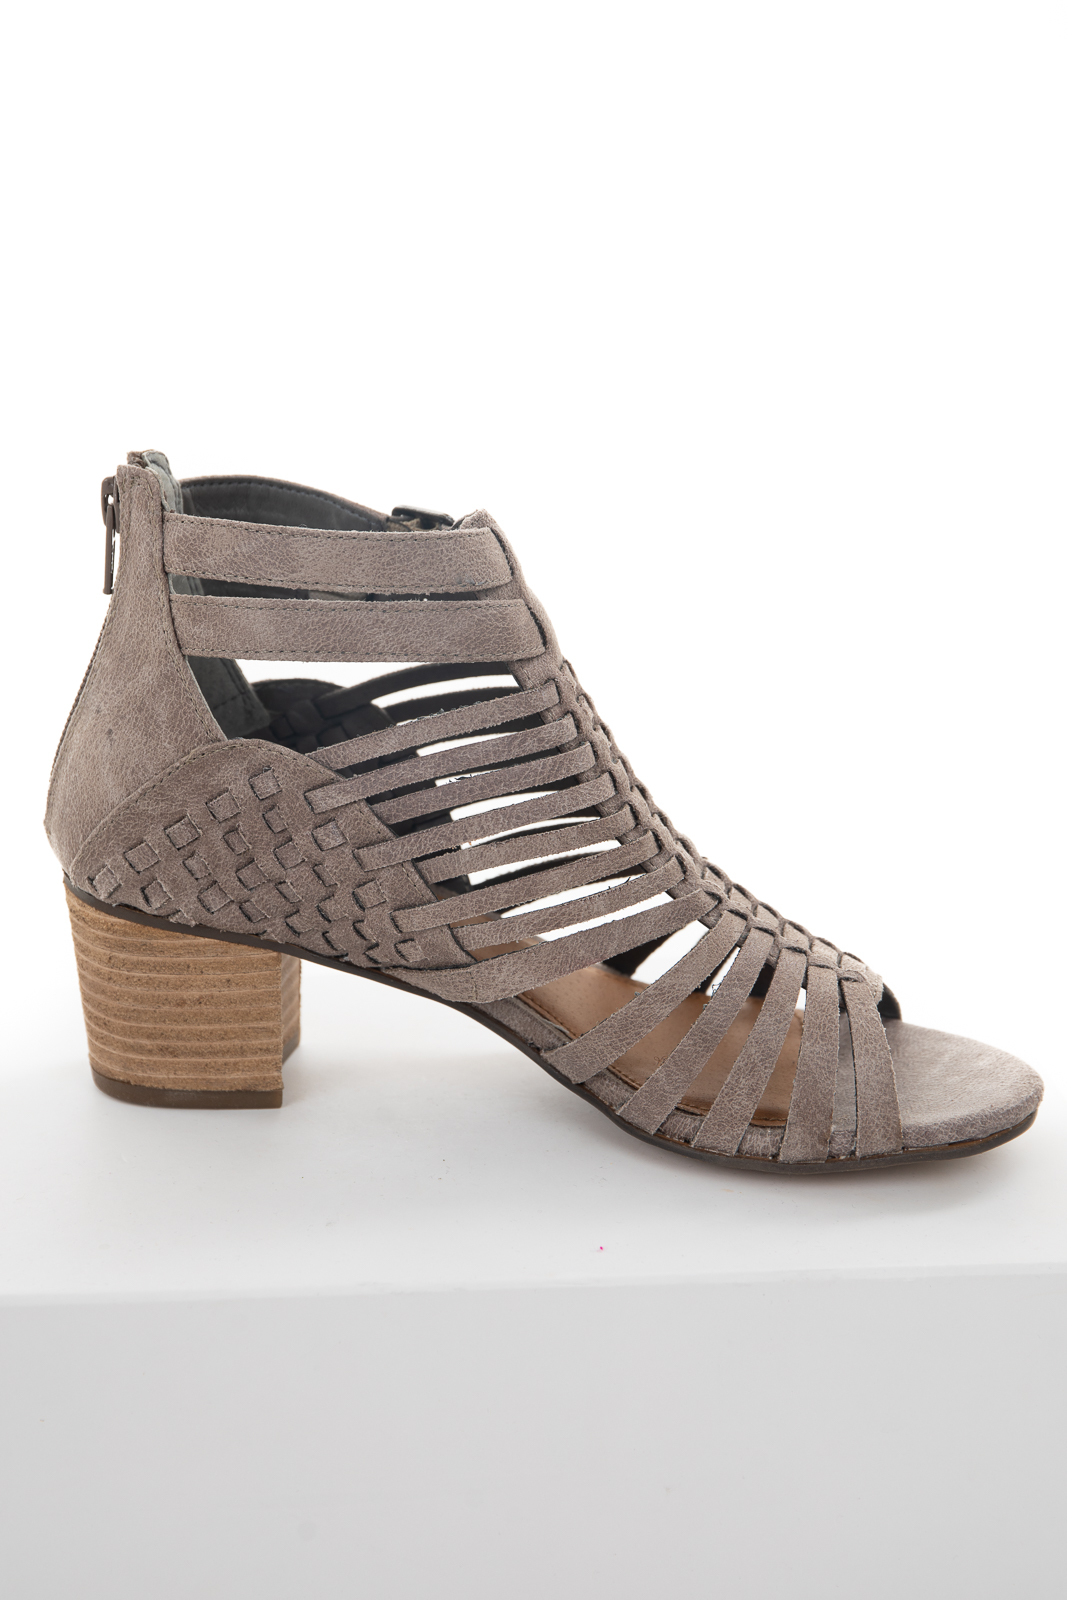 Taupe Soft Faux Leather Strappy Sandal with Chunky Heel